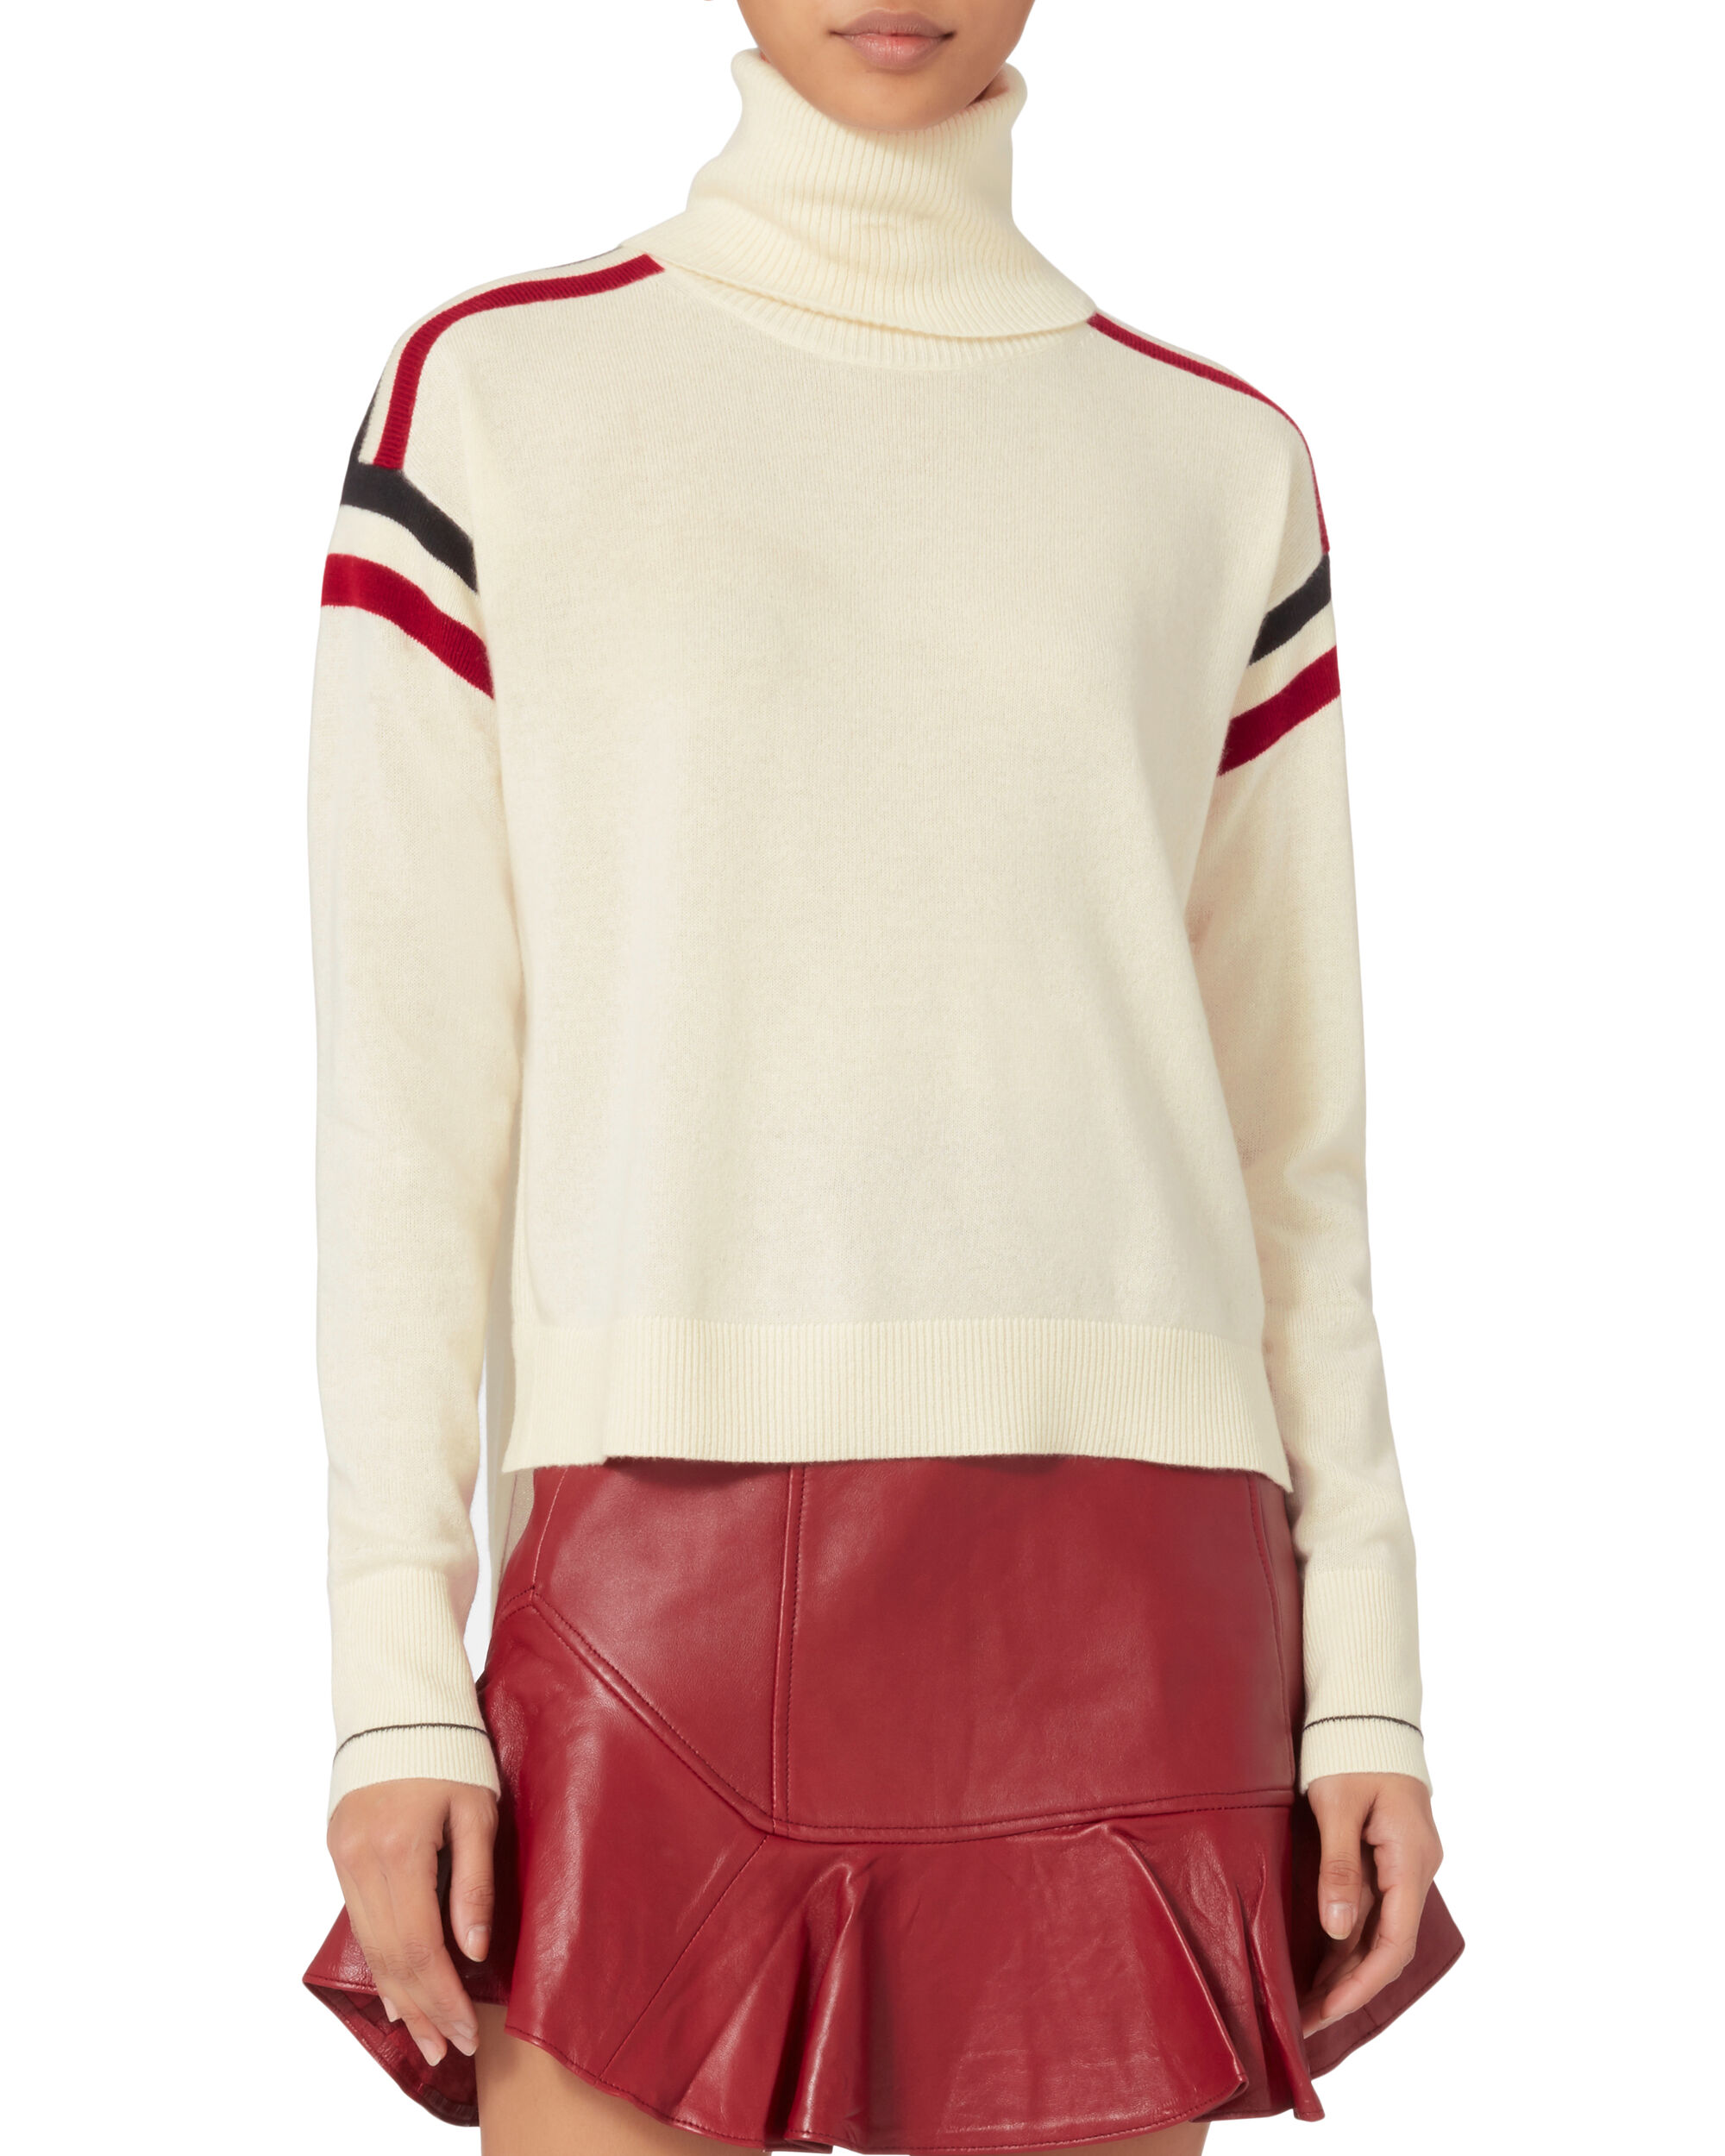 Canter Cashmere Sweater, IVORY, hi-res